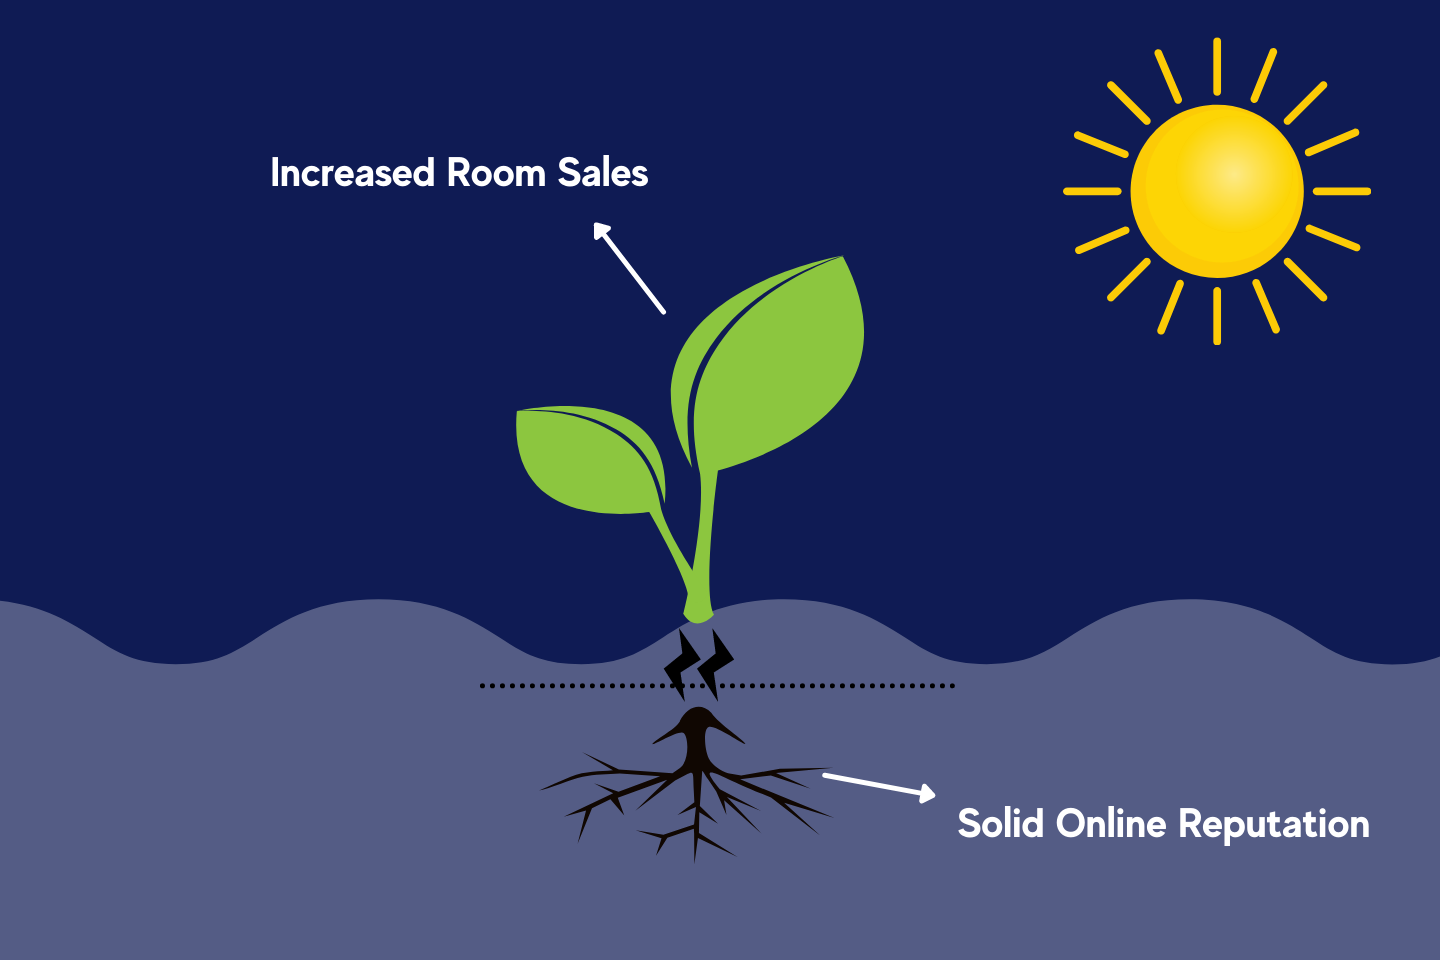 online reputation sales increase for hotels and hotel revenue